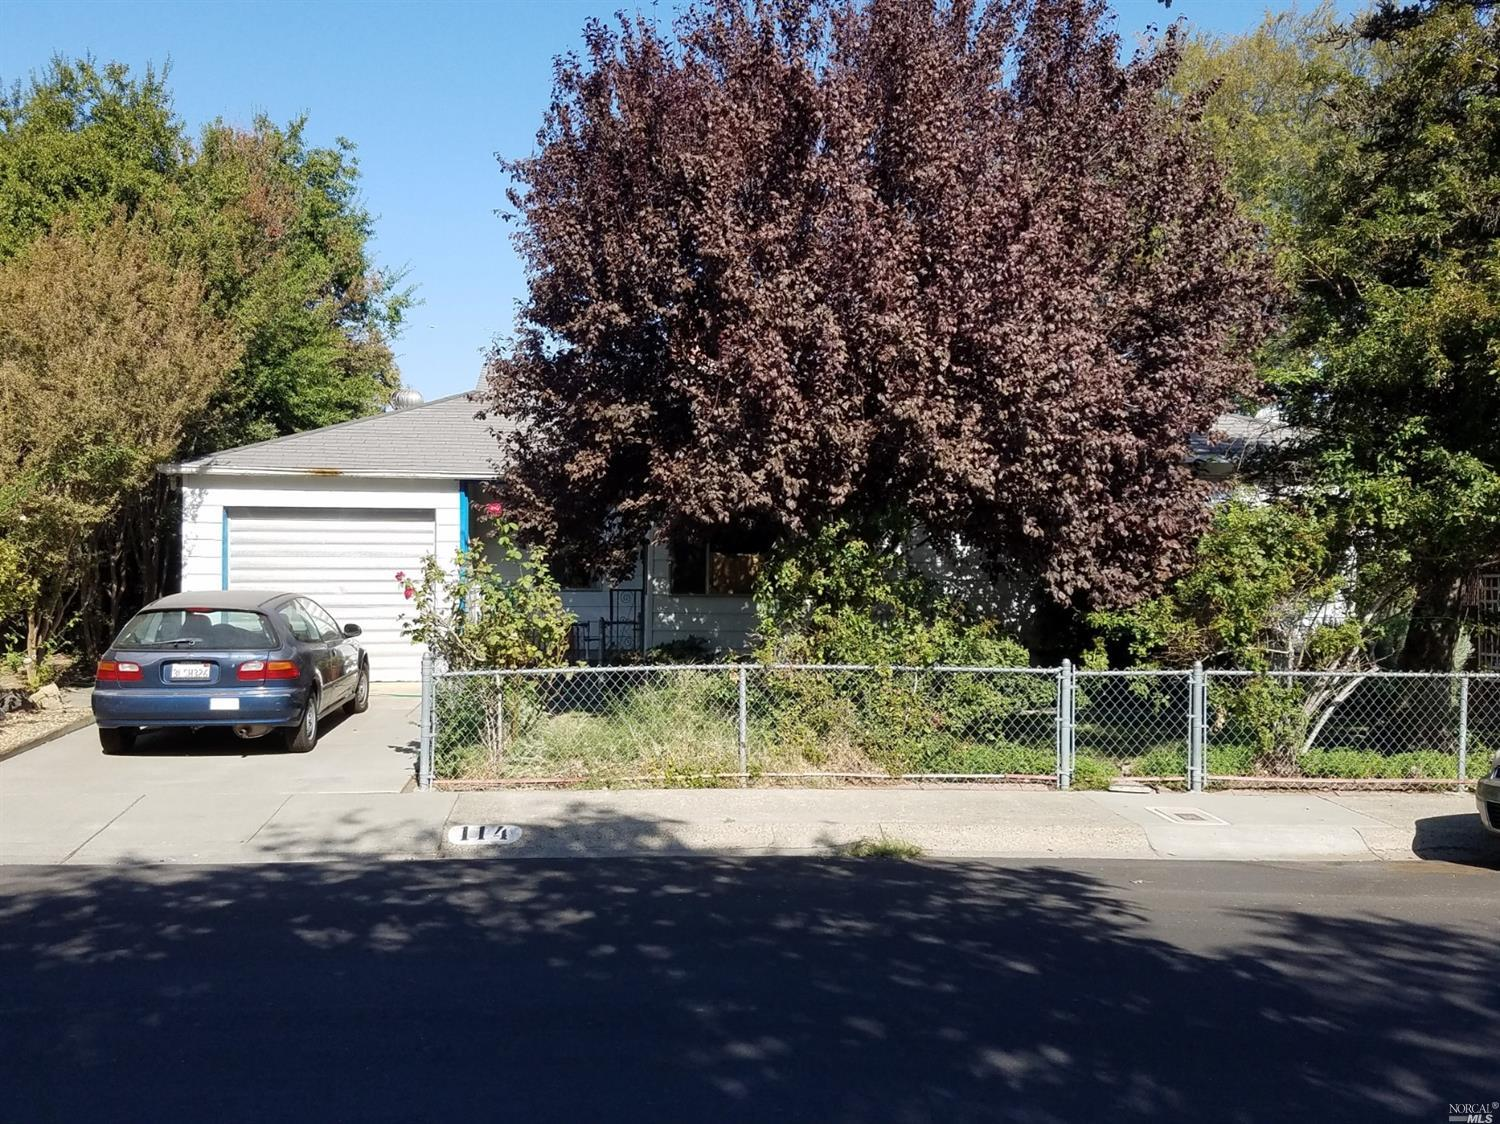 Adorable Downtown Vacaville home! This one story home is 3bed/1bath on a large lot. Beautiful backya